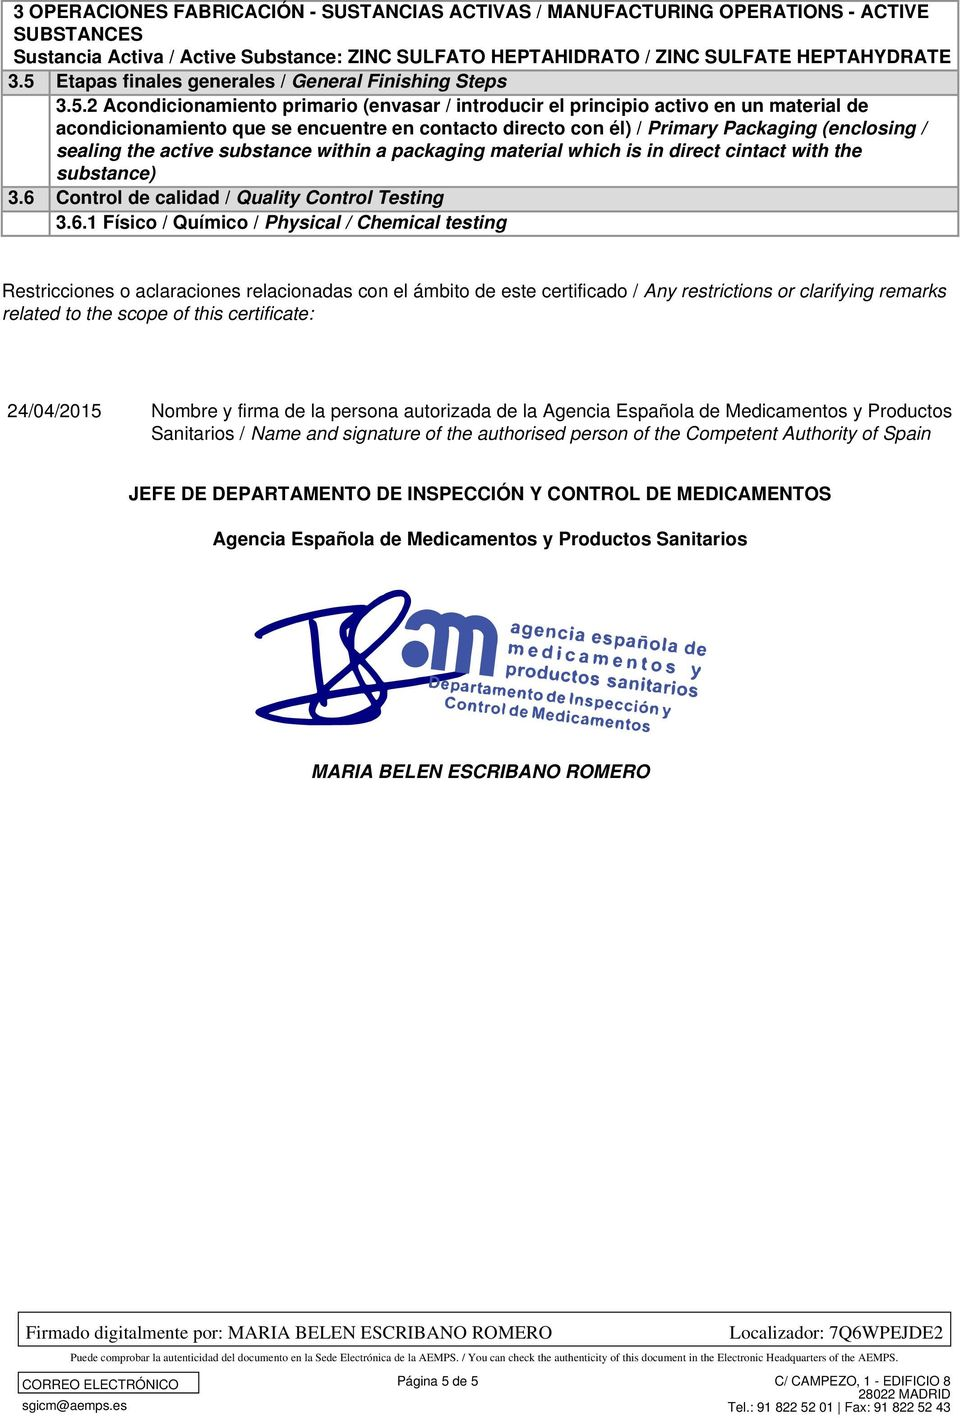 Agencia Española de Medicamentos y Productos Sanitarios / Name and signature of the authorised person of the Competent Authority of Spain JEFE DE